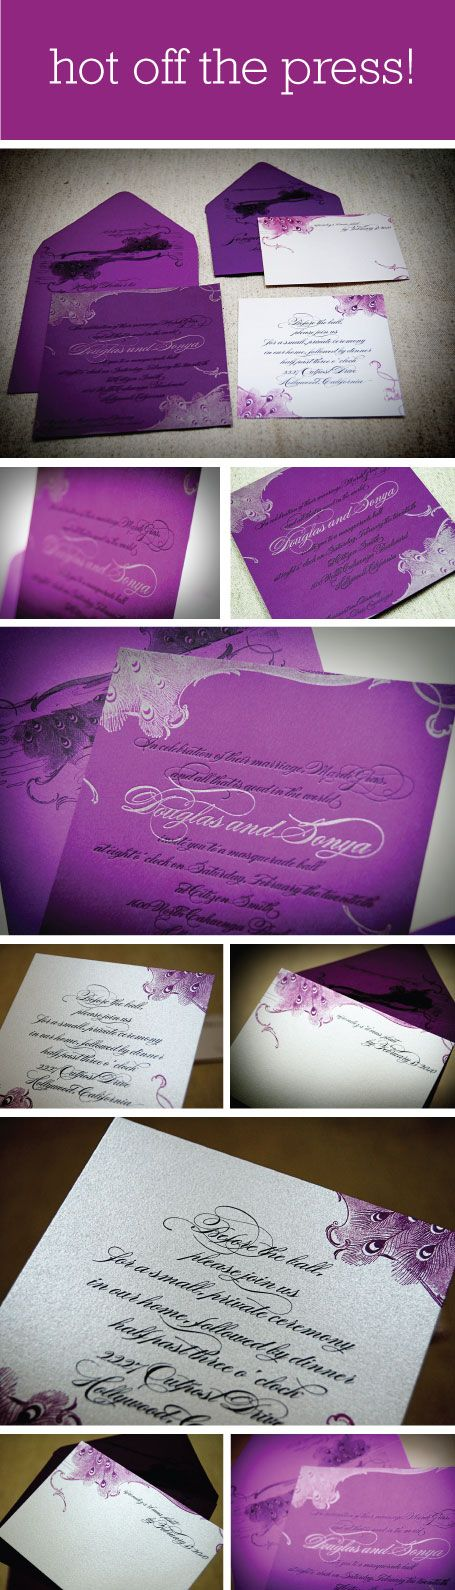 [ gorgeous + typography + illustration ]  Marie Antoinette Inspired Letterpress wedding invitations